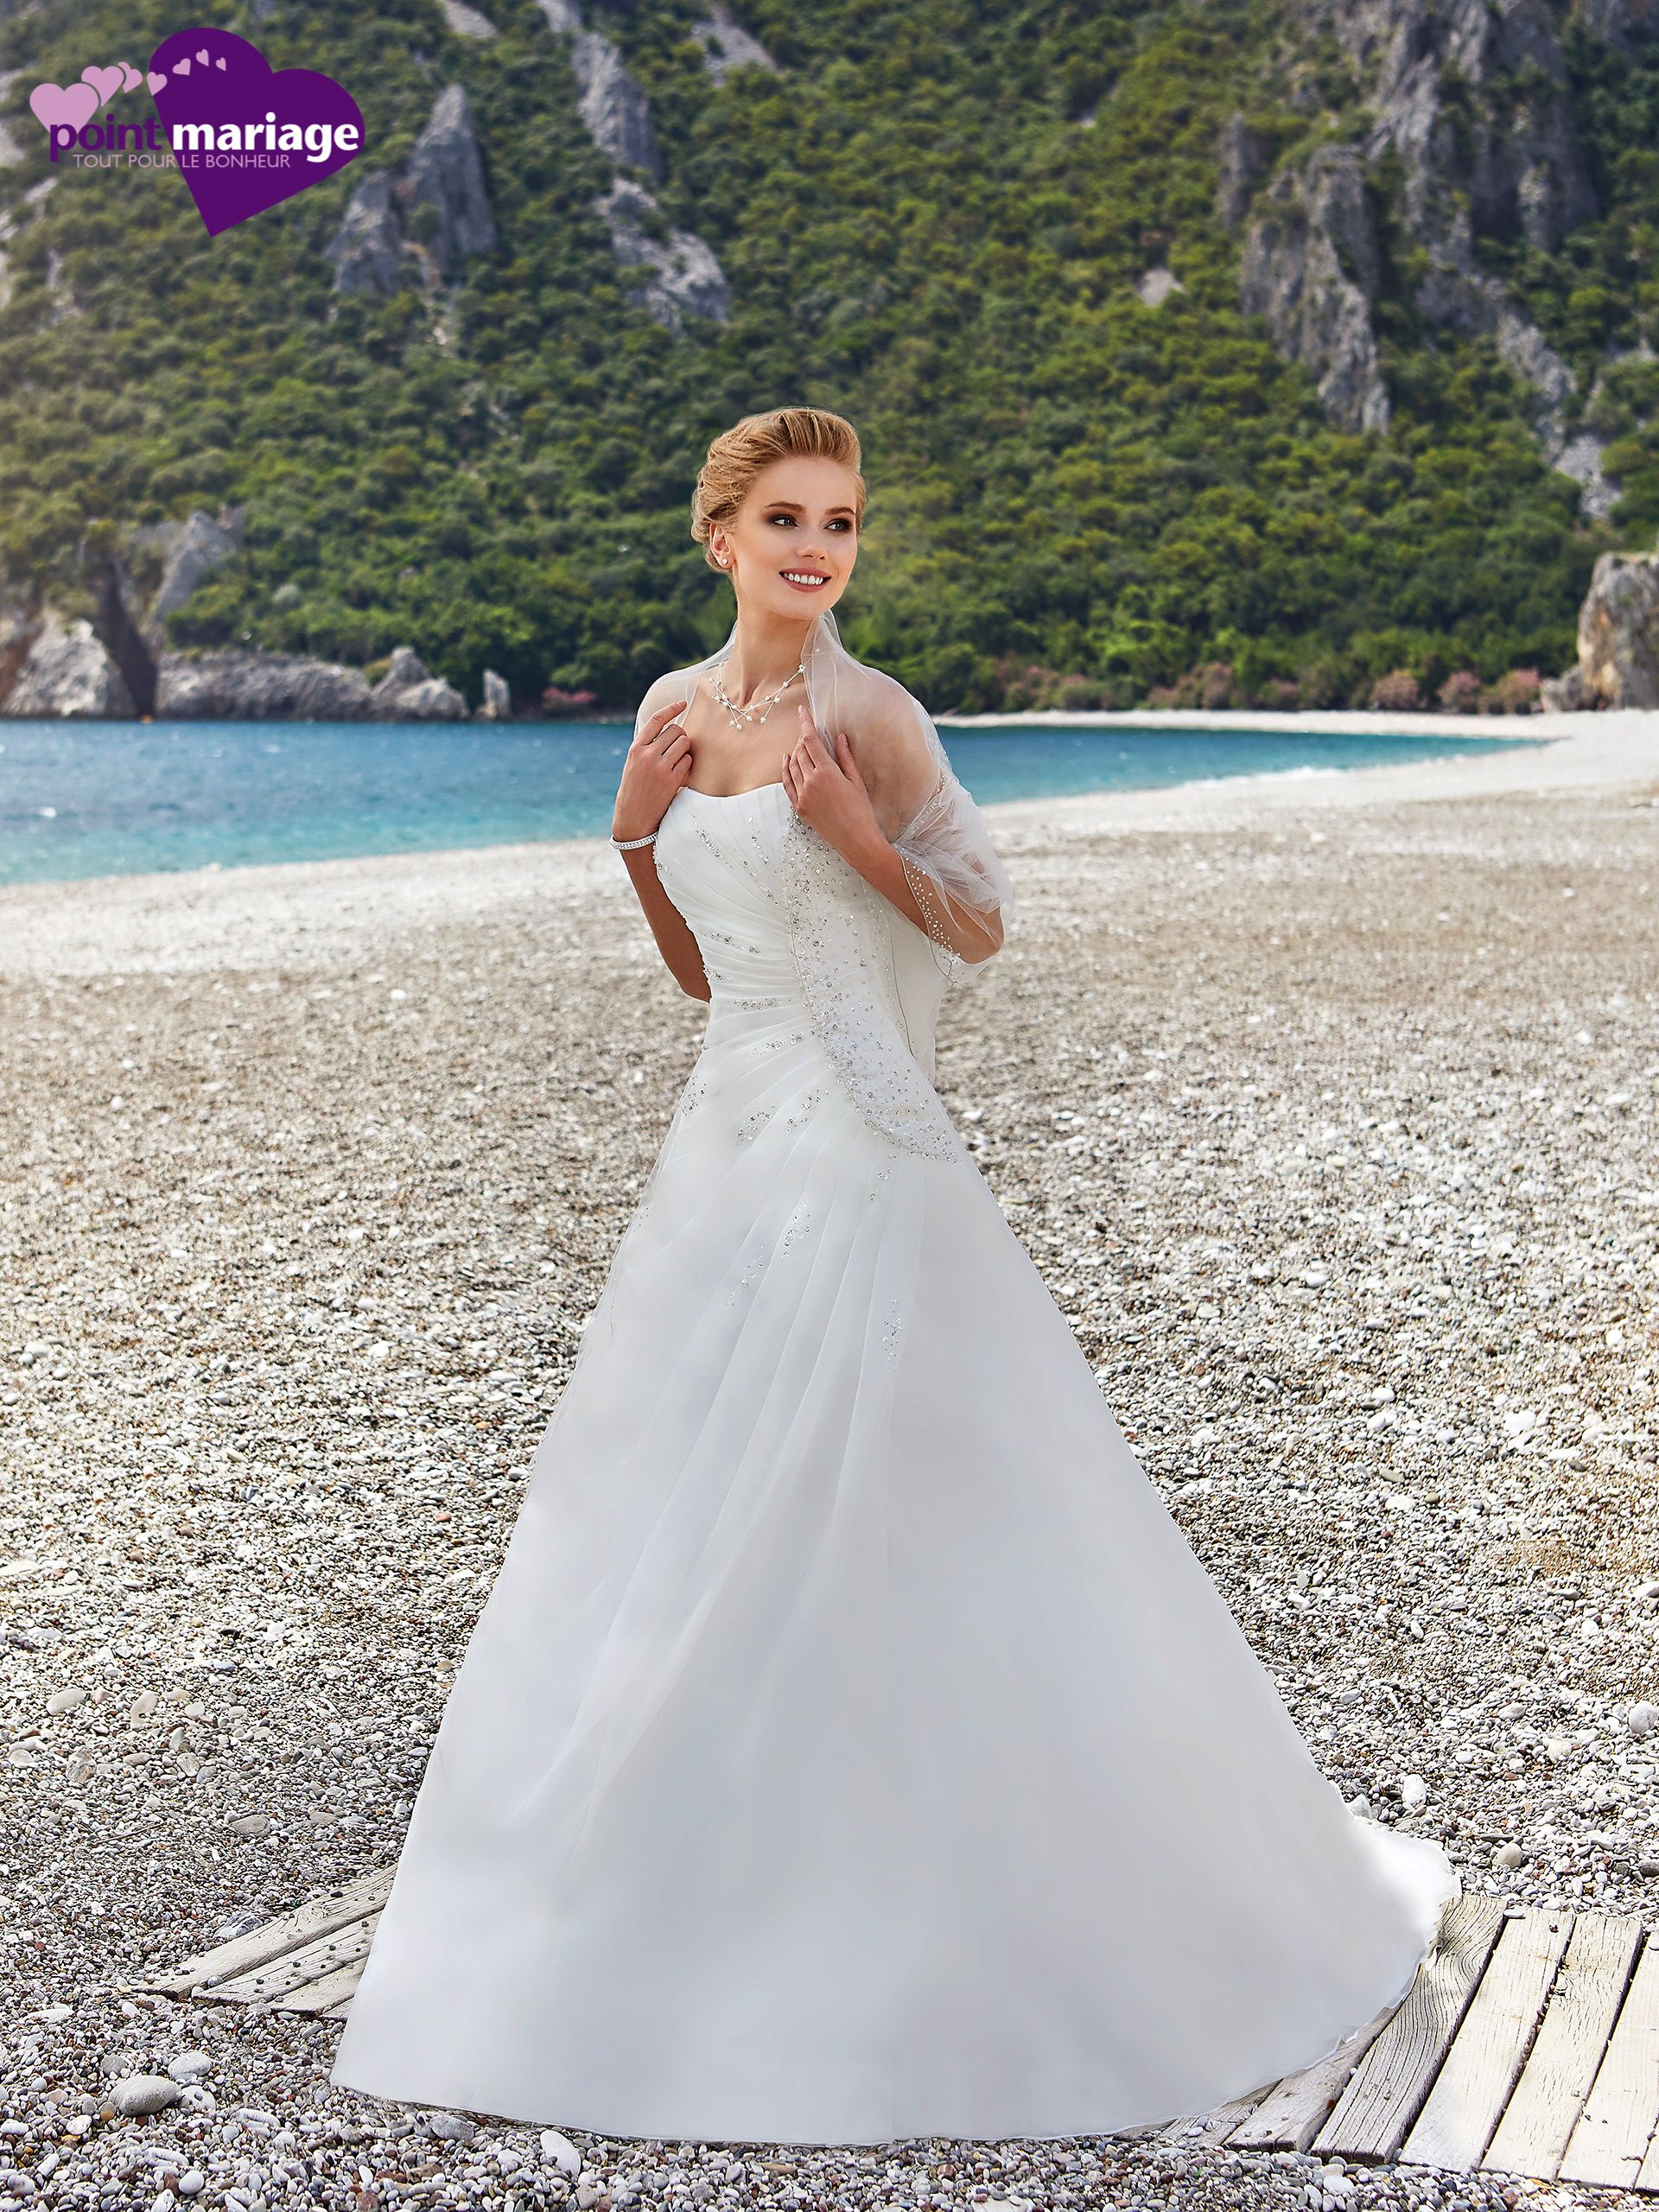 Robe Bucarest #Collection 2018 #PointMariage